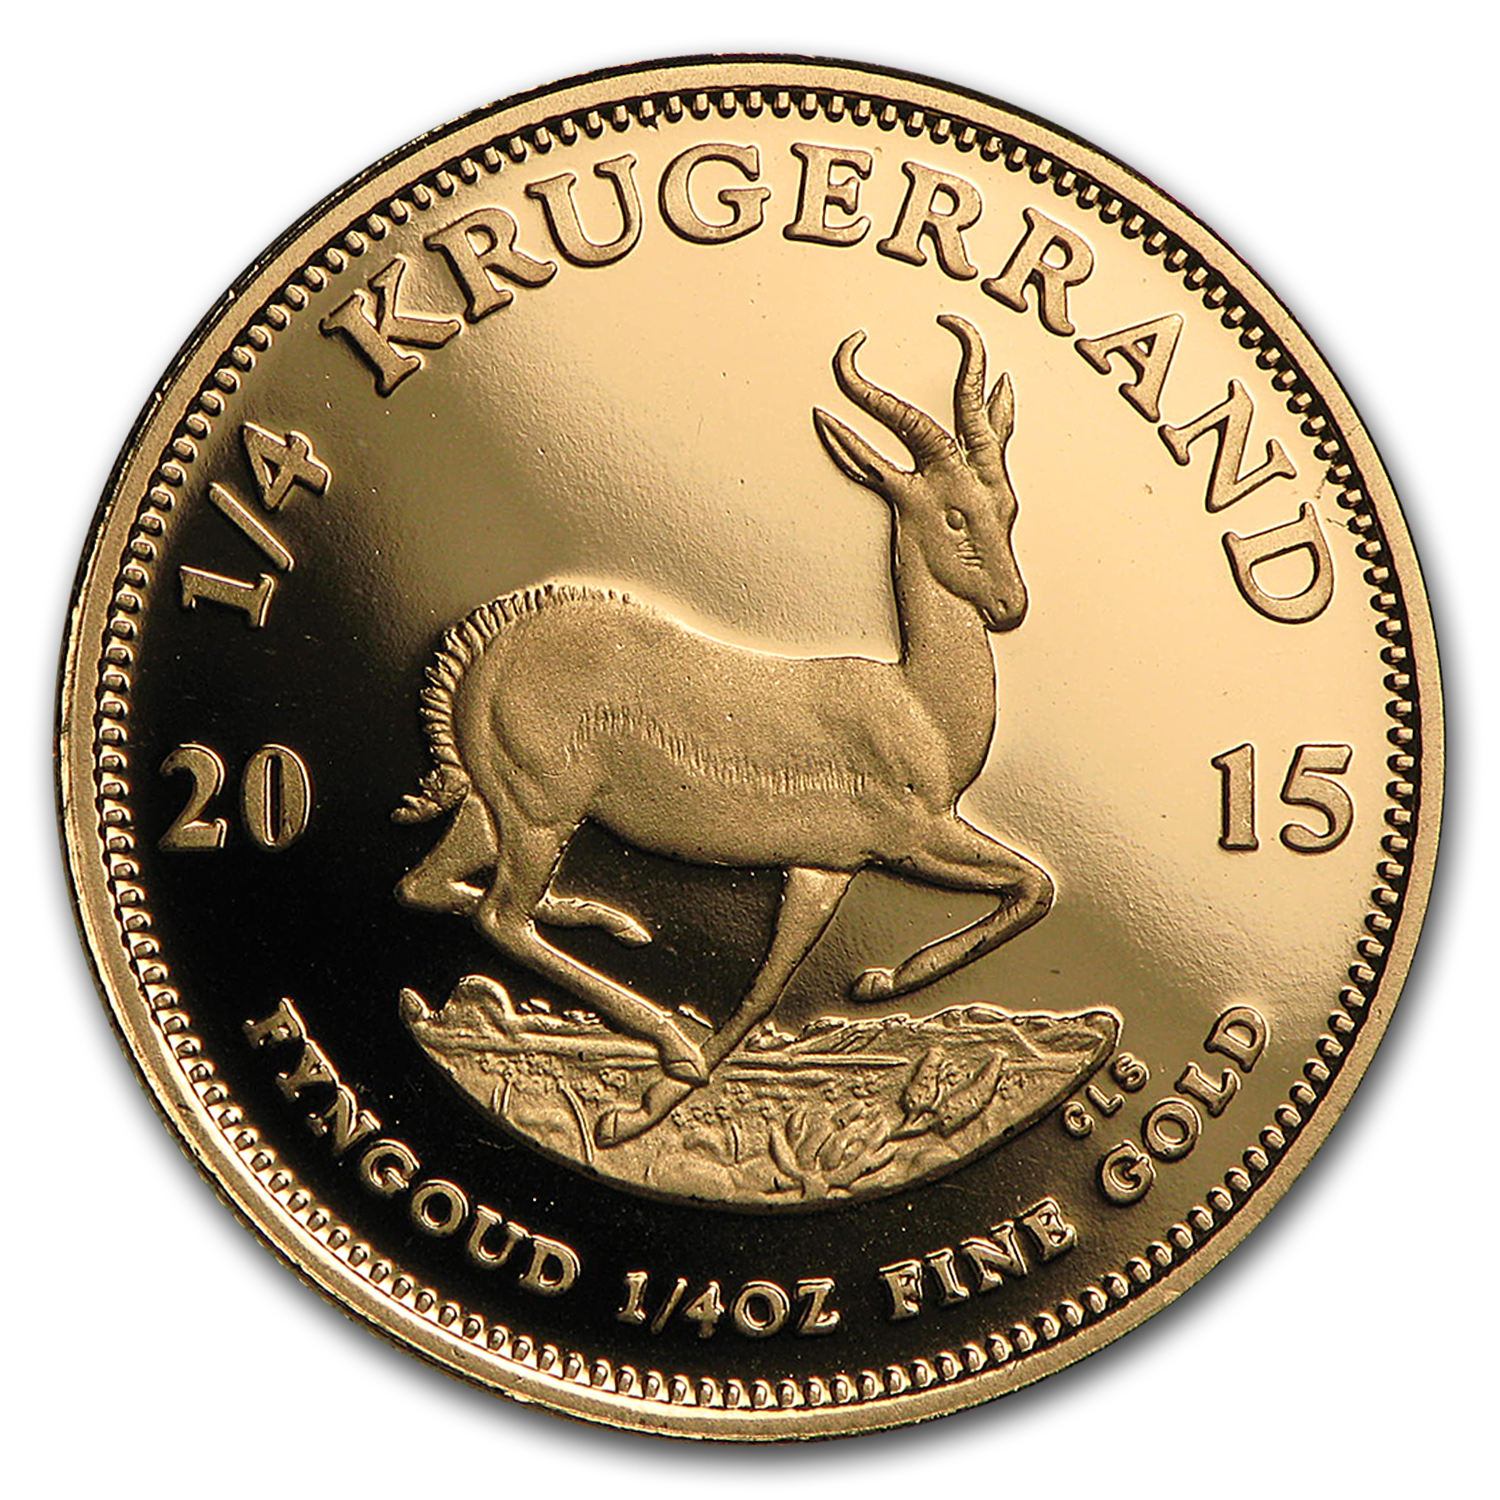 2015 South Africa 1/4 oz Proof Gold Krugerrand